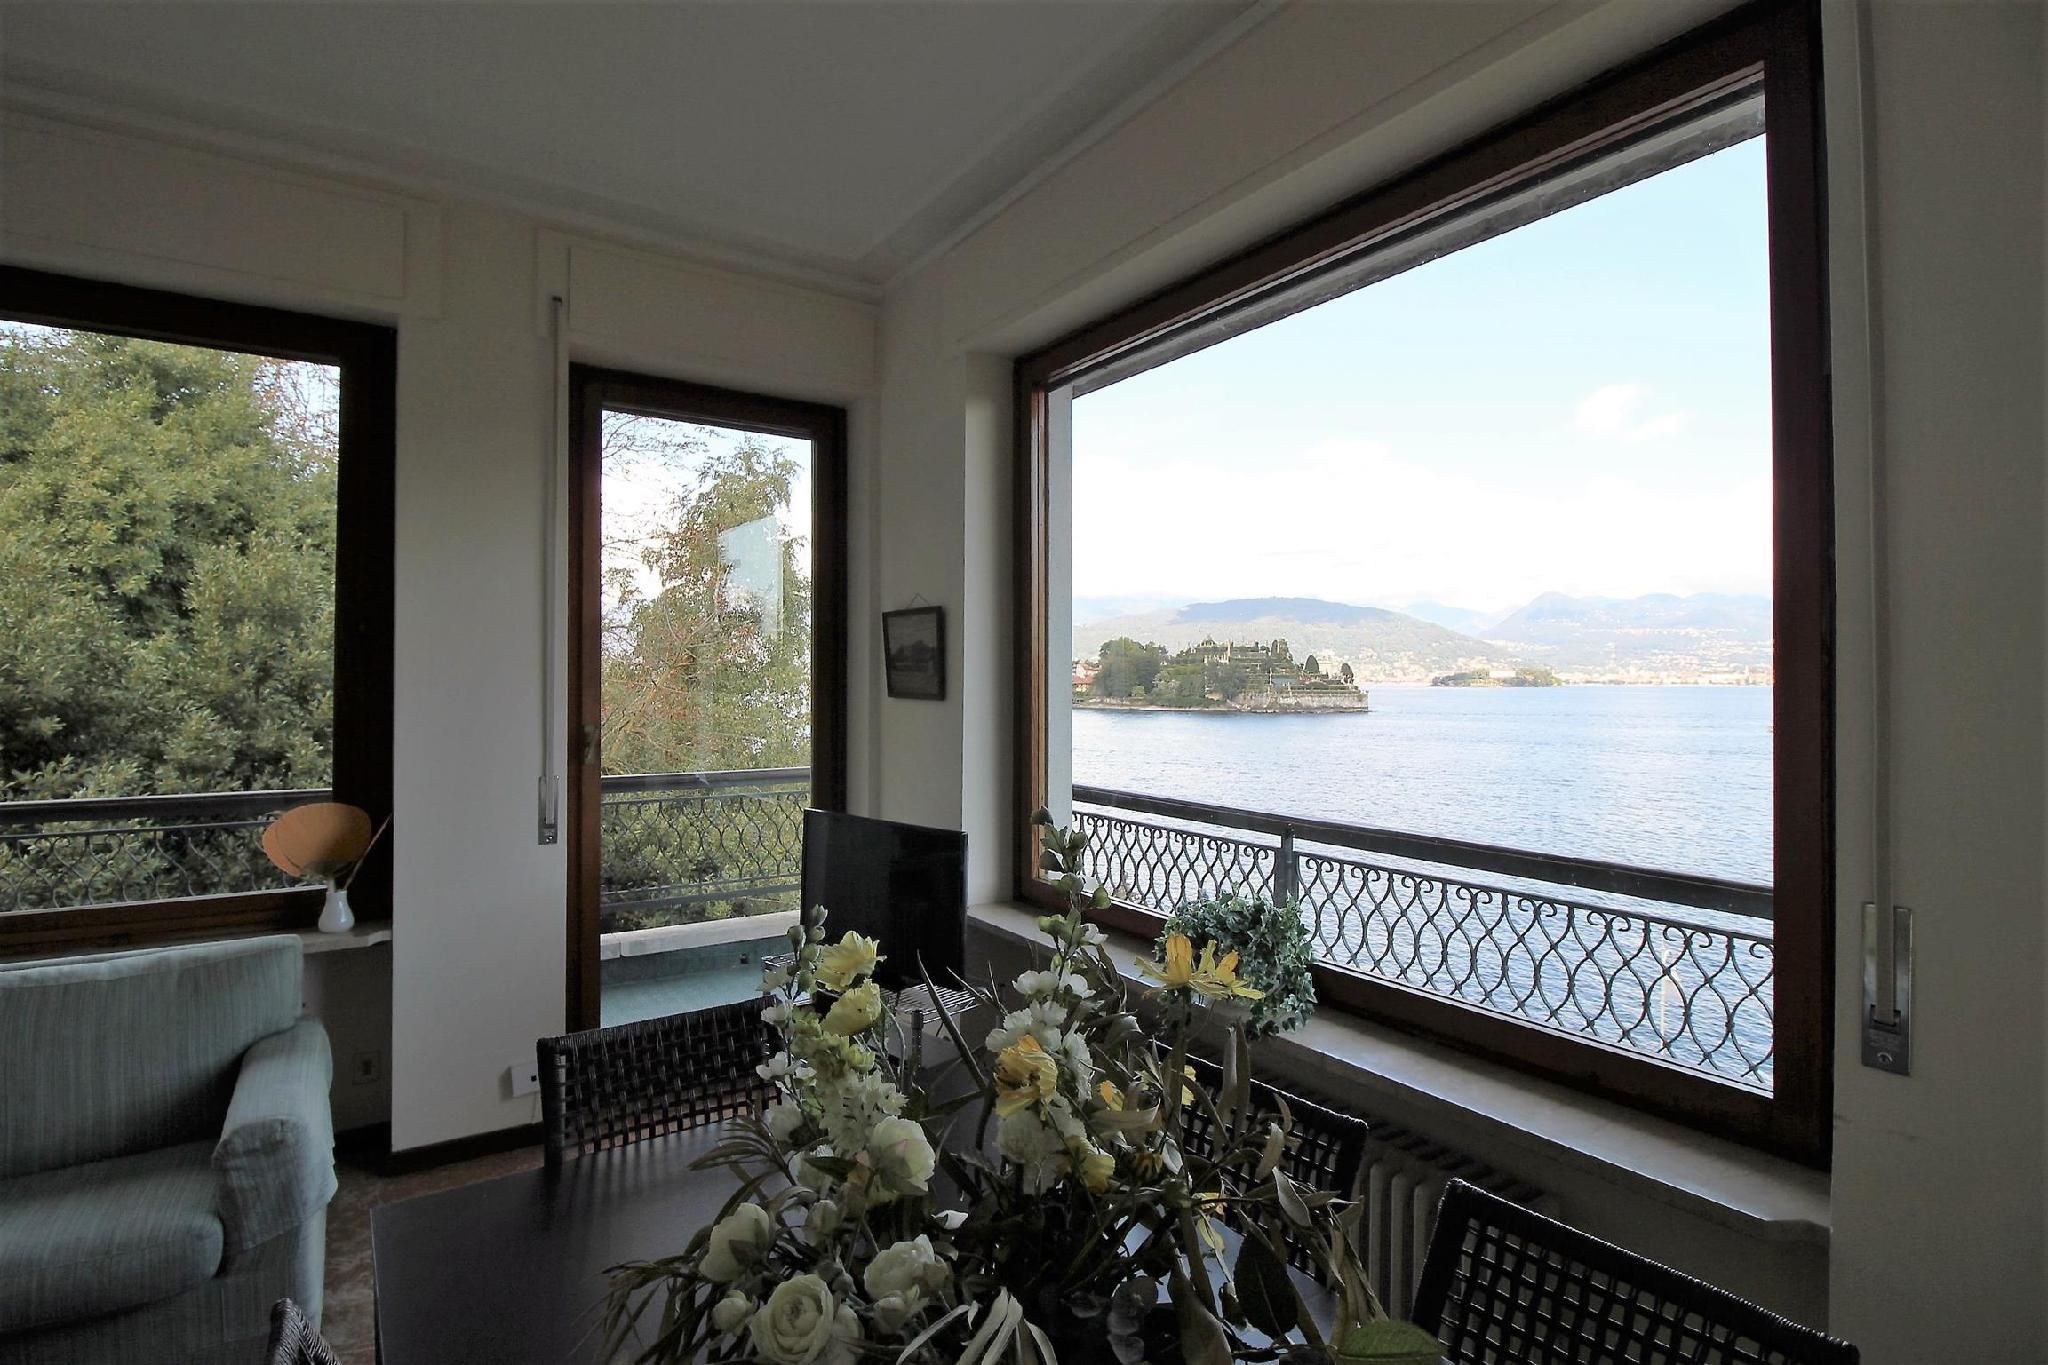 On the lake side with a magnificent view of the Borromean Islands